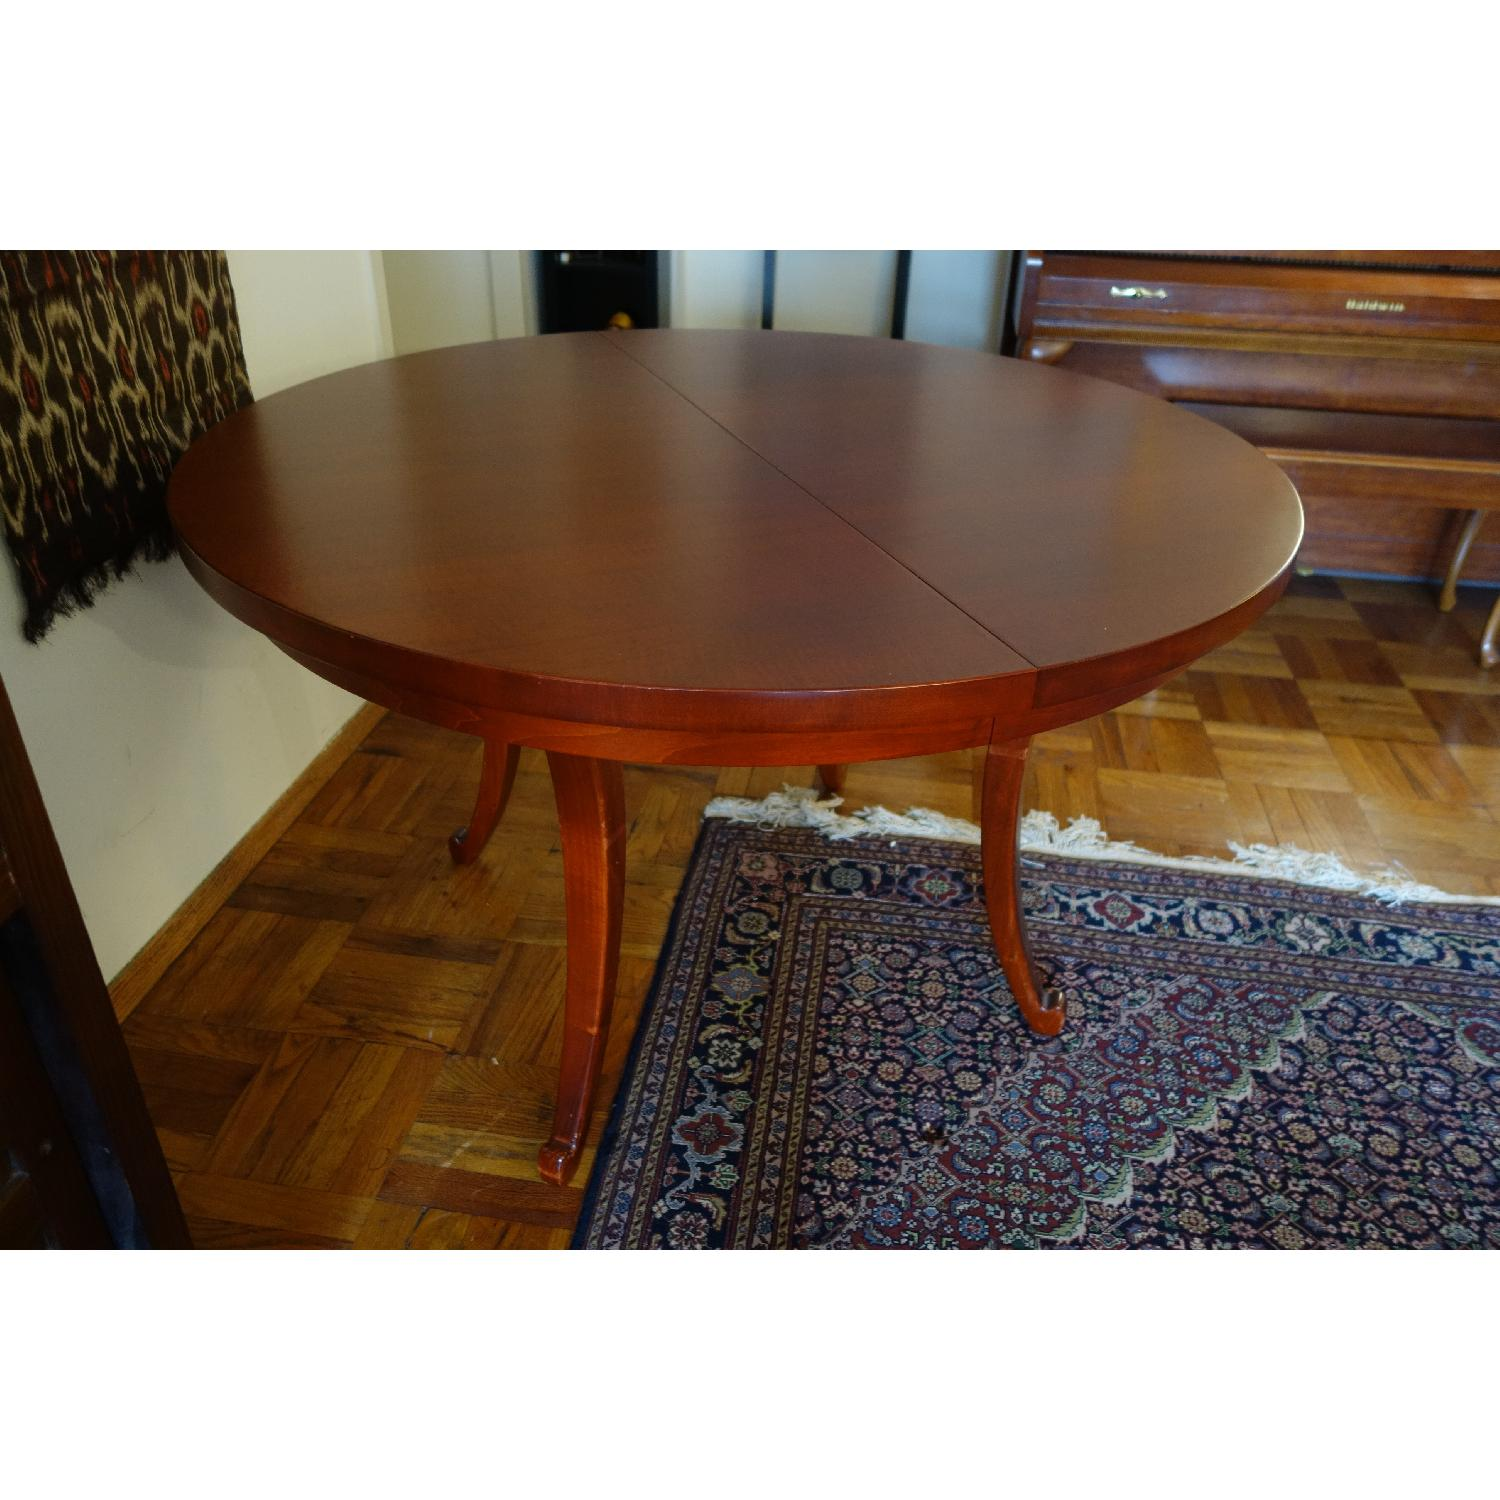 Dialogica Curl Oval Mahogany Dining Table - image-3